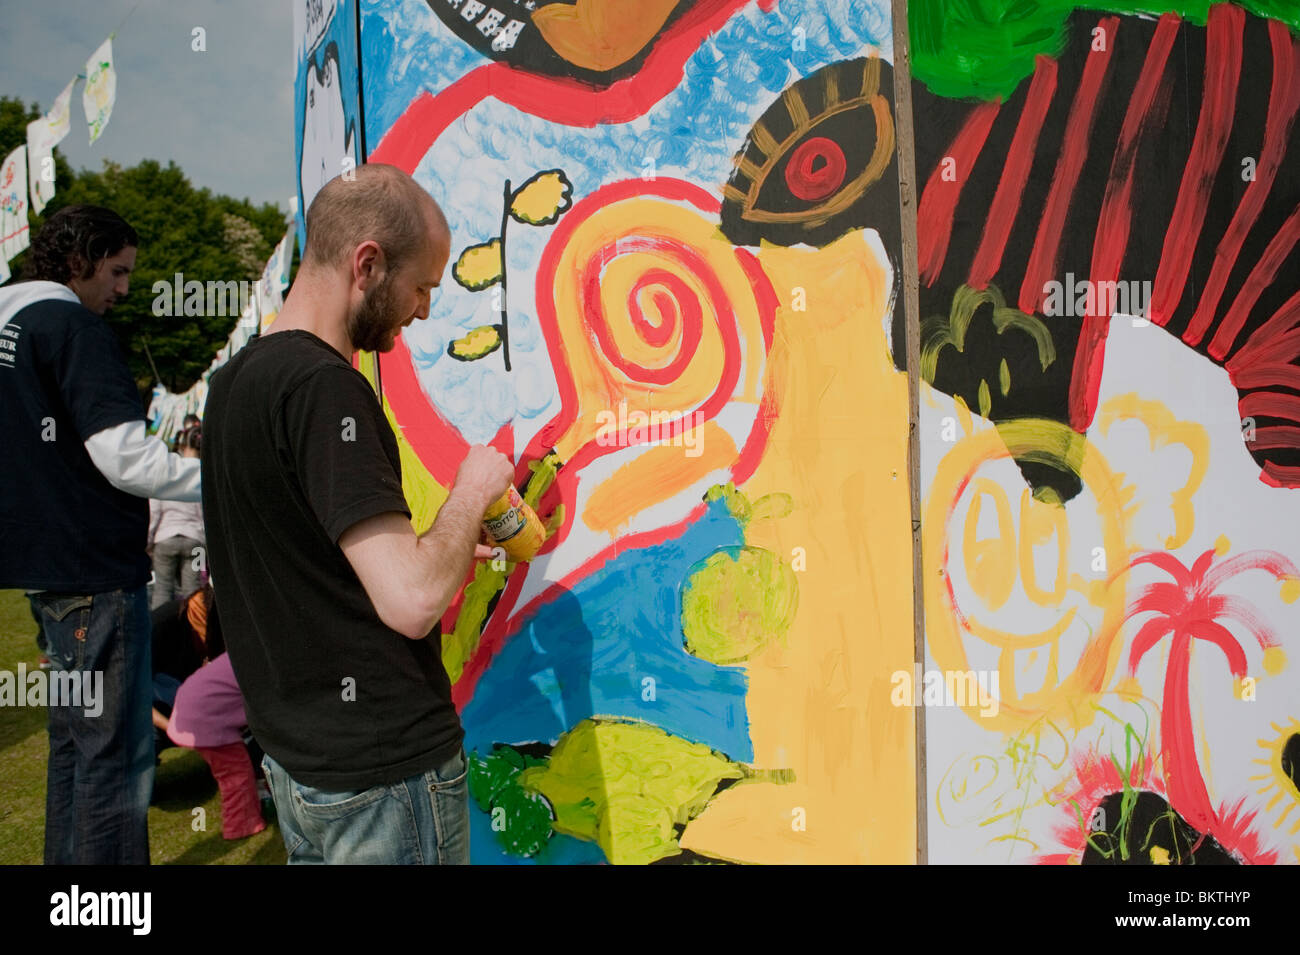 Together Community People Outdoors Celebrate Global Sustainable ...